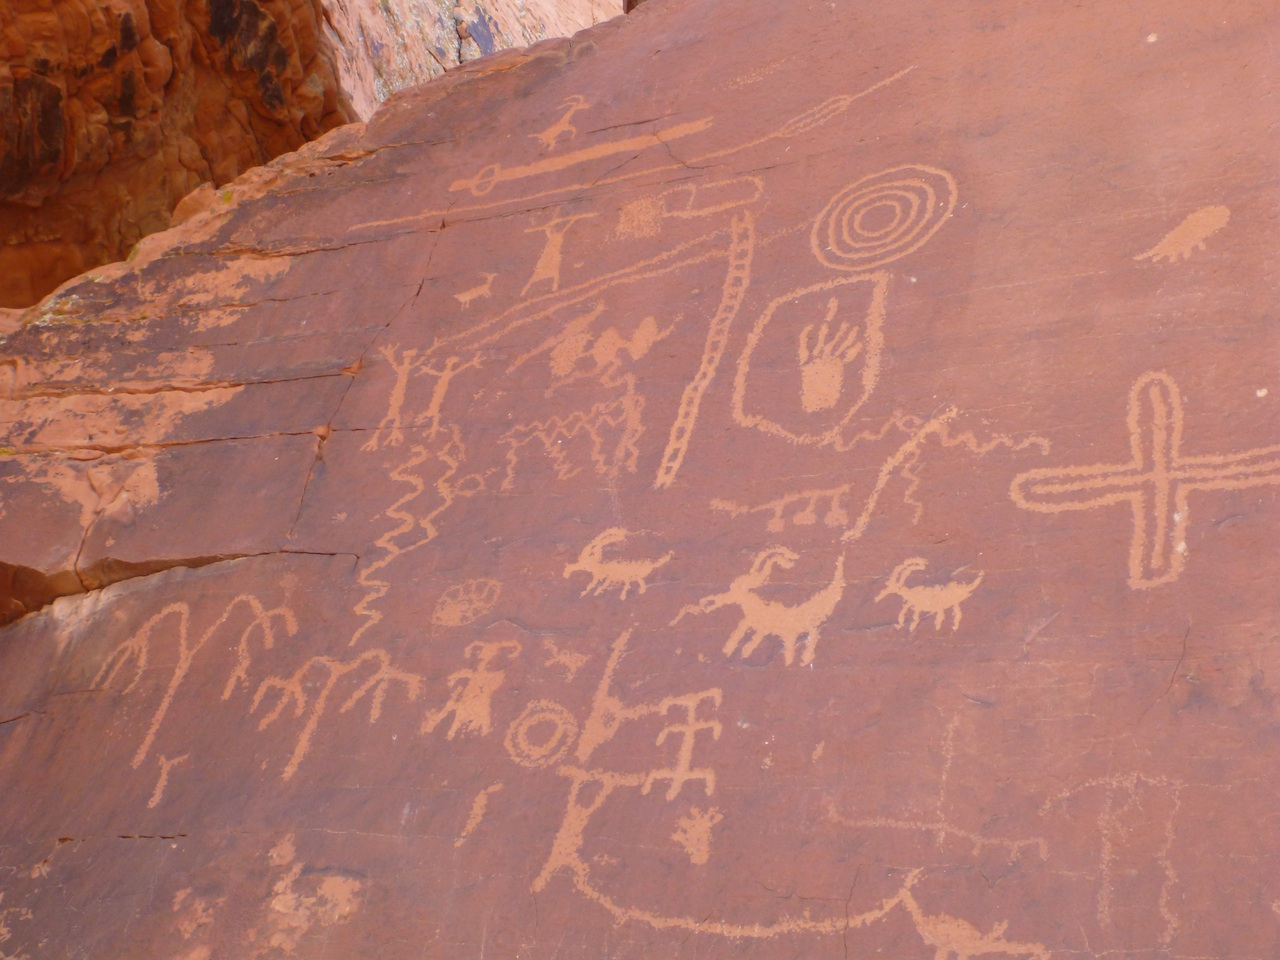 Petroglyphs On The Side Of The Red Rock Sandstone